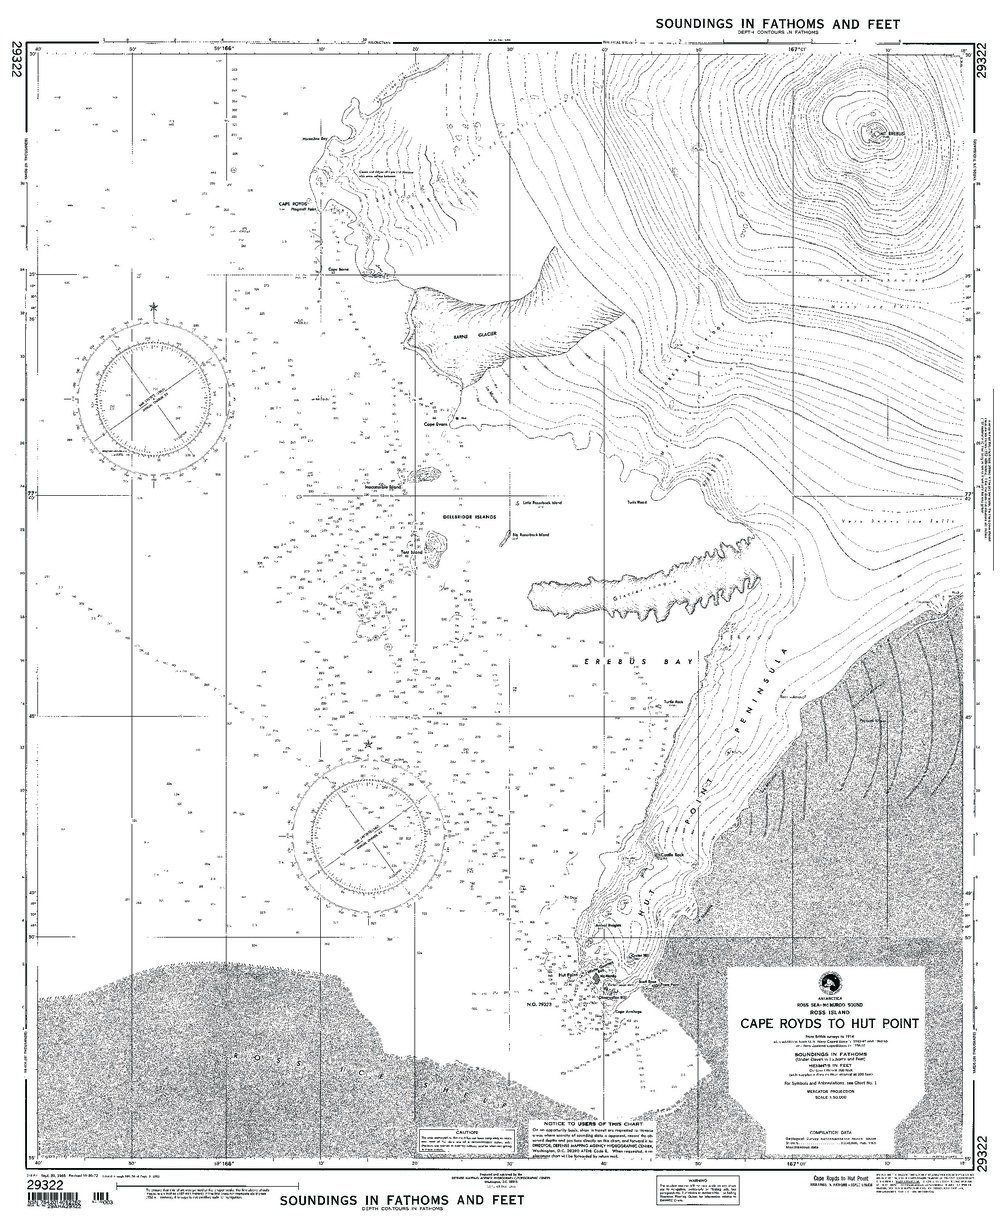 NGA Chart 29322WP: C Royds To Hut P Ross I Ross Sea Mcmurd; 35.25 X 43; WATERPROOF